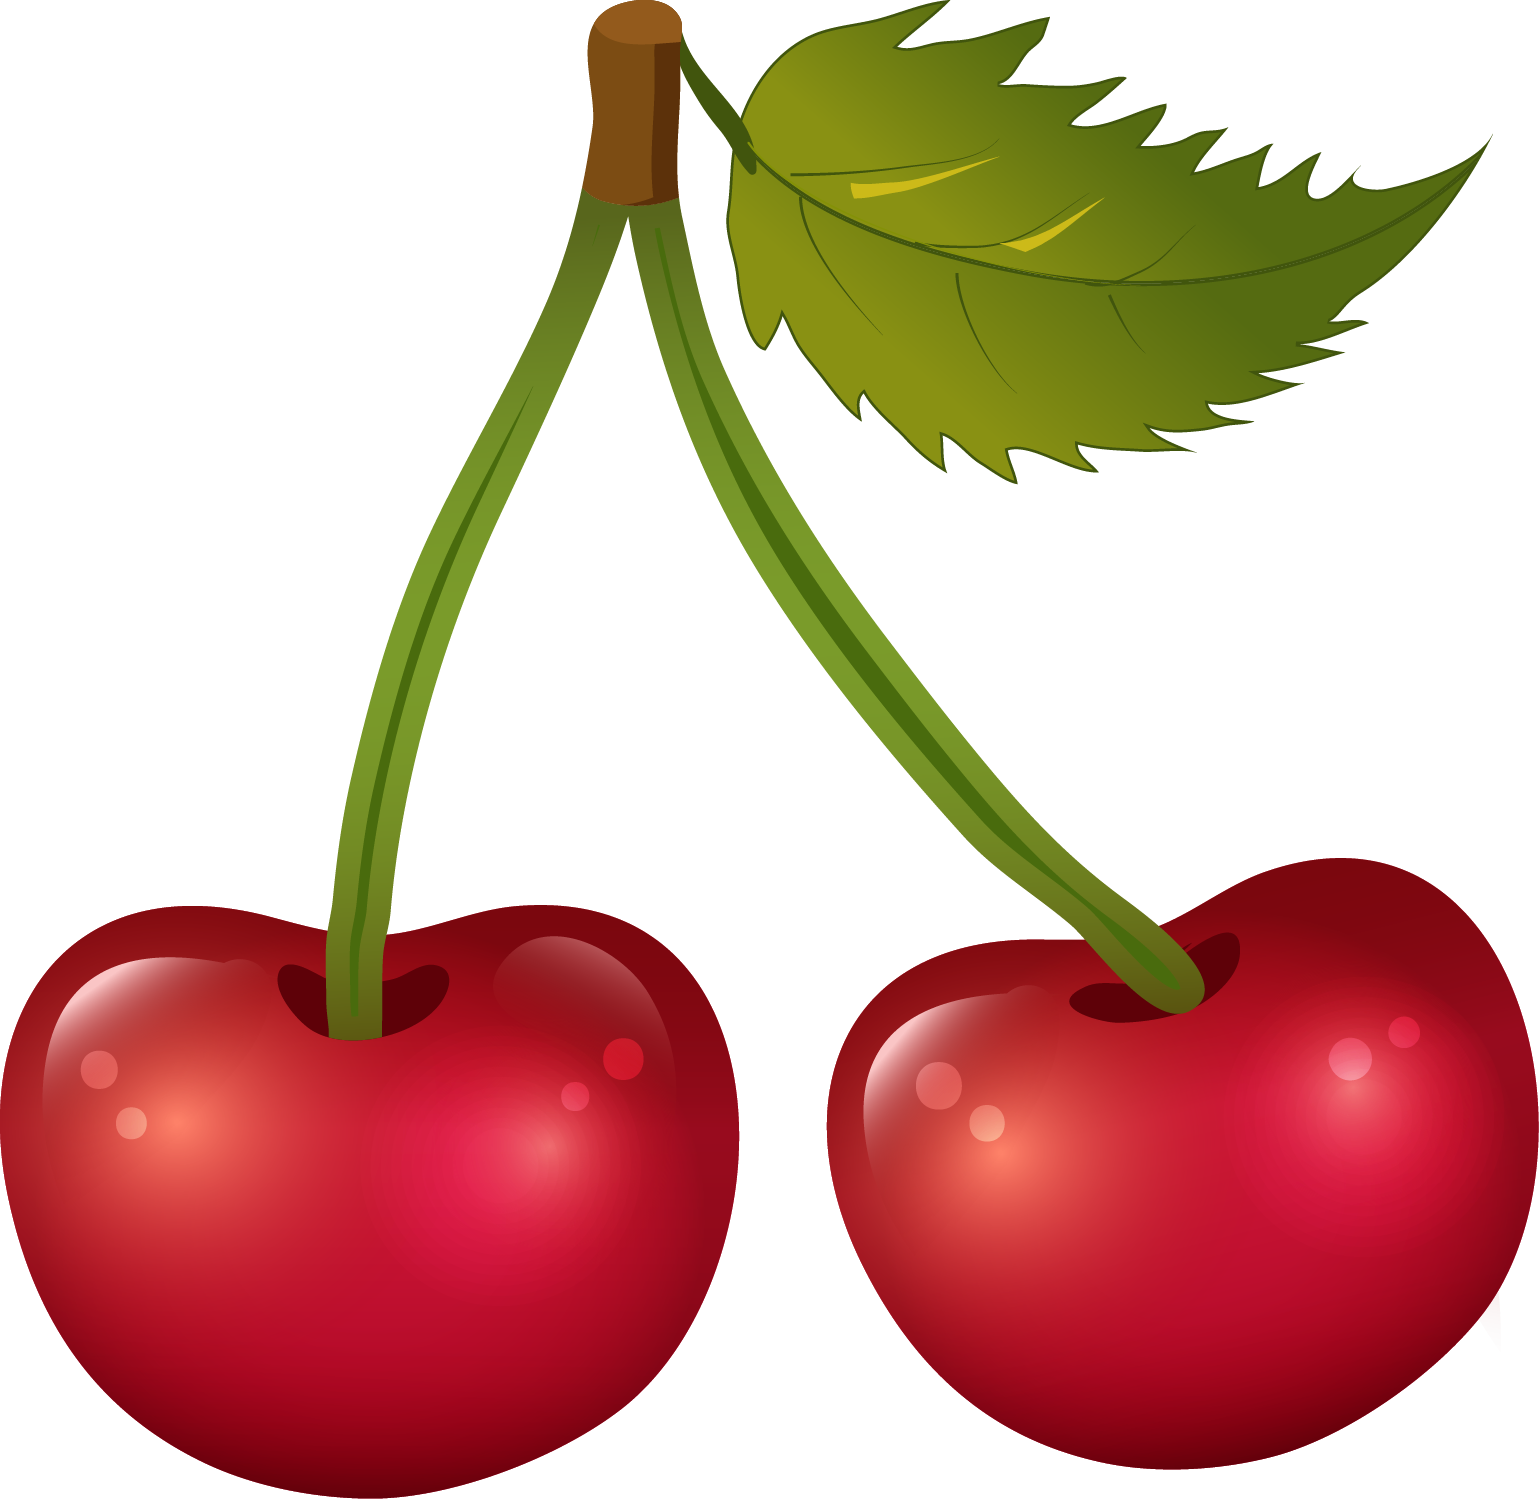 clip freeuse download Png transparent free images. Cherry clipart sweet fruit.